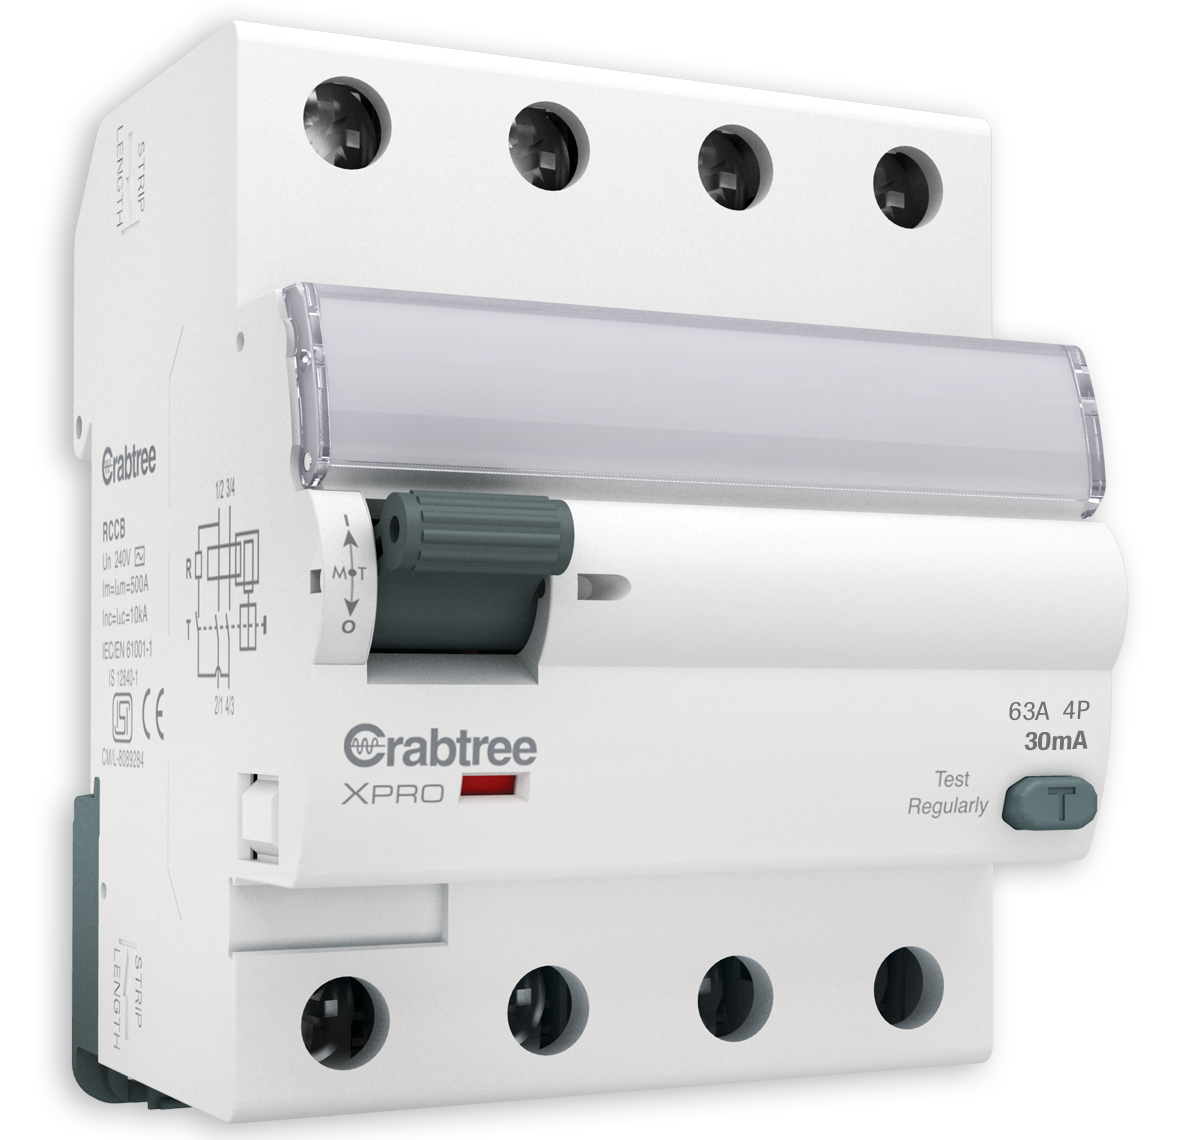 Crabtree - RCCB  A  Type FP 30mA-63A